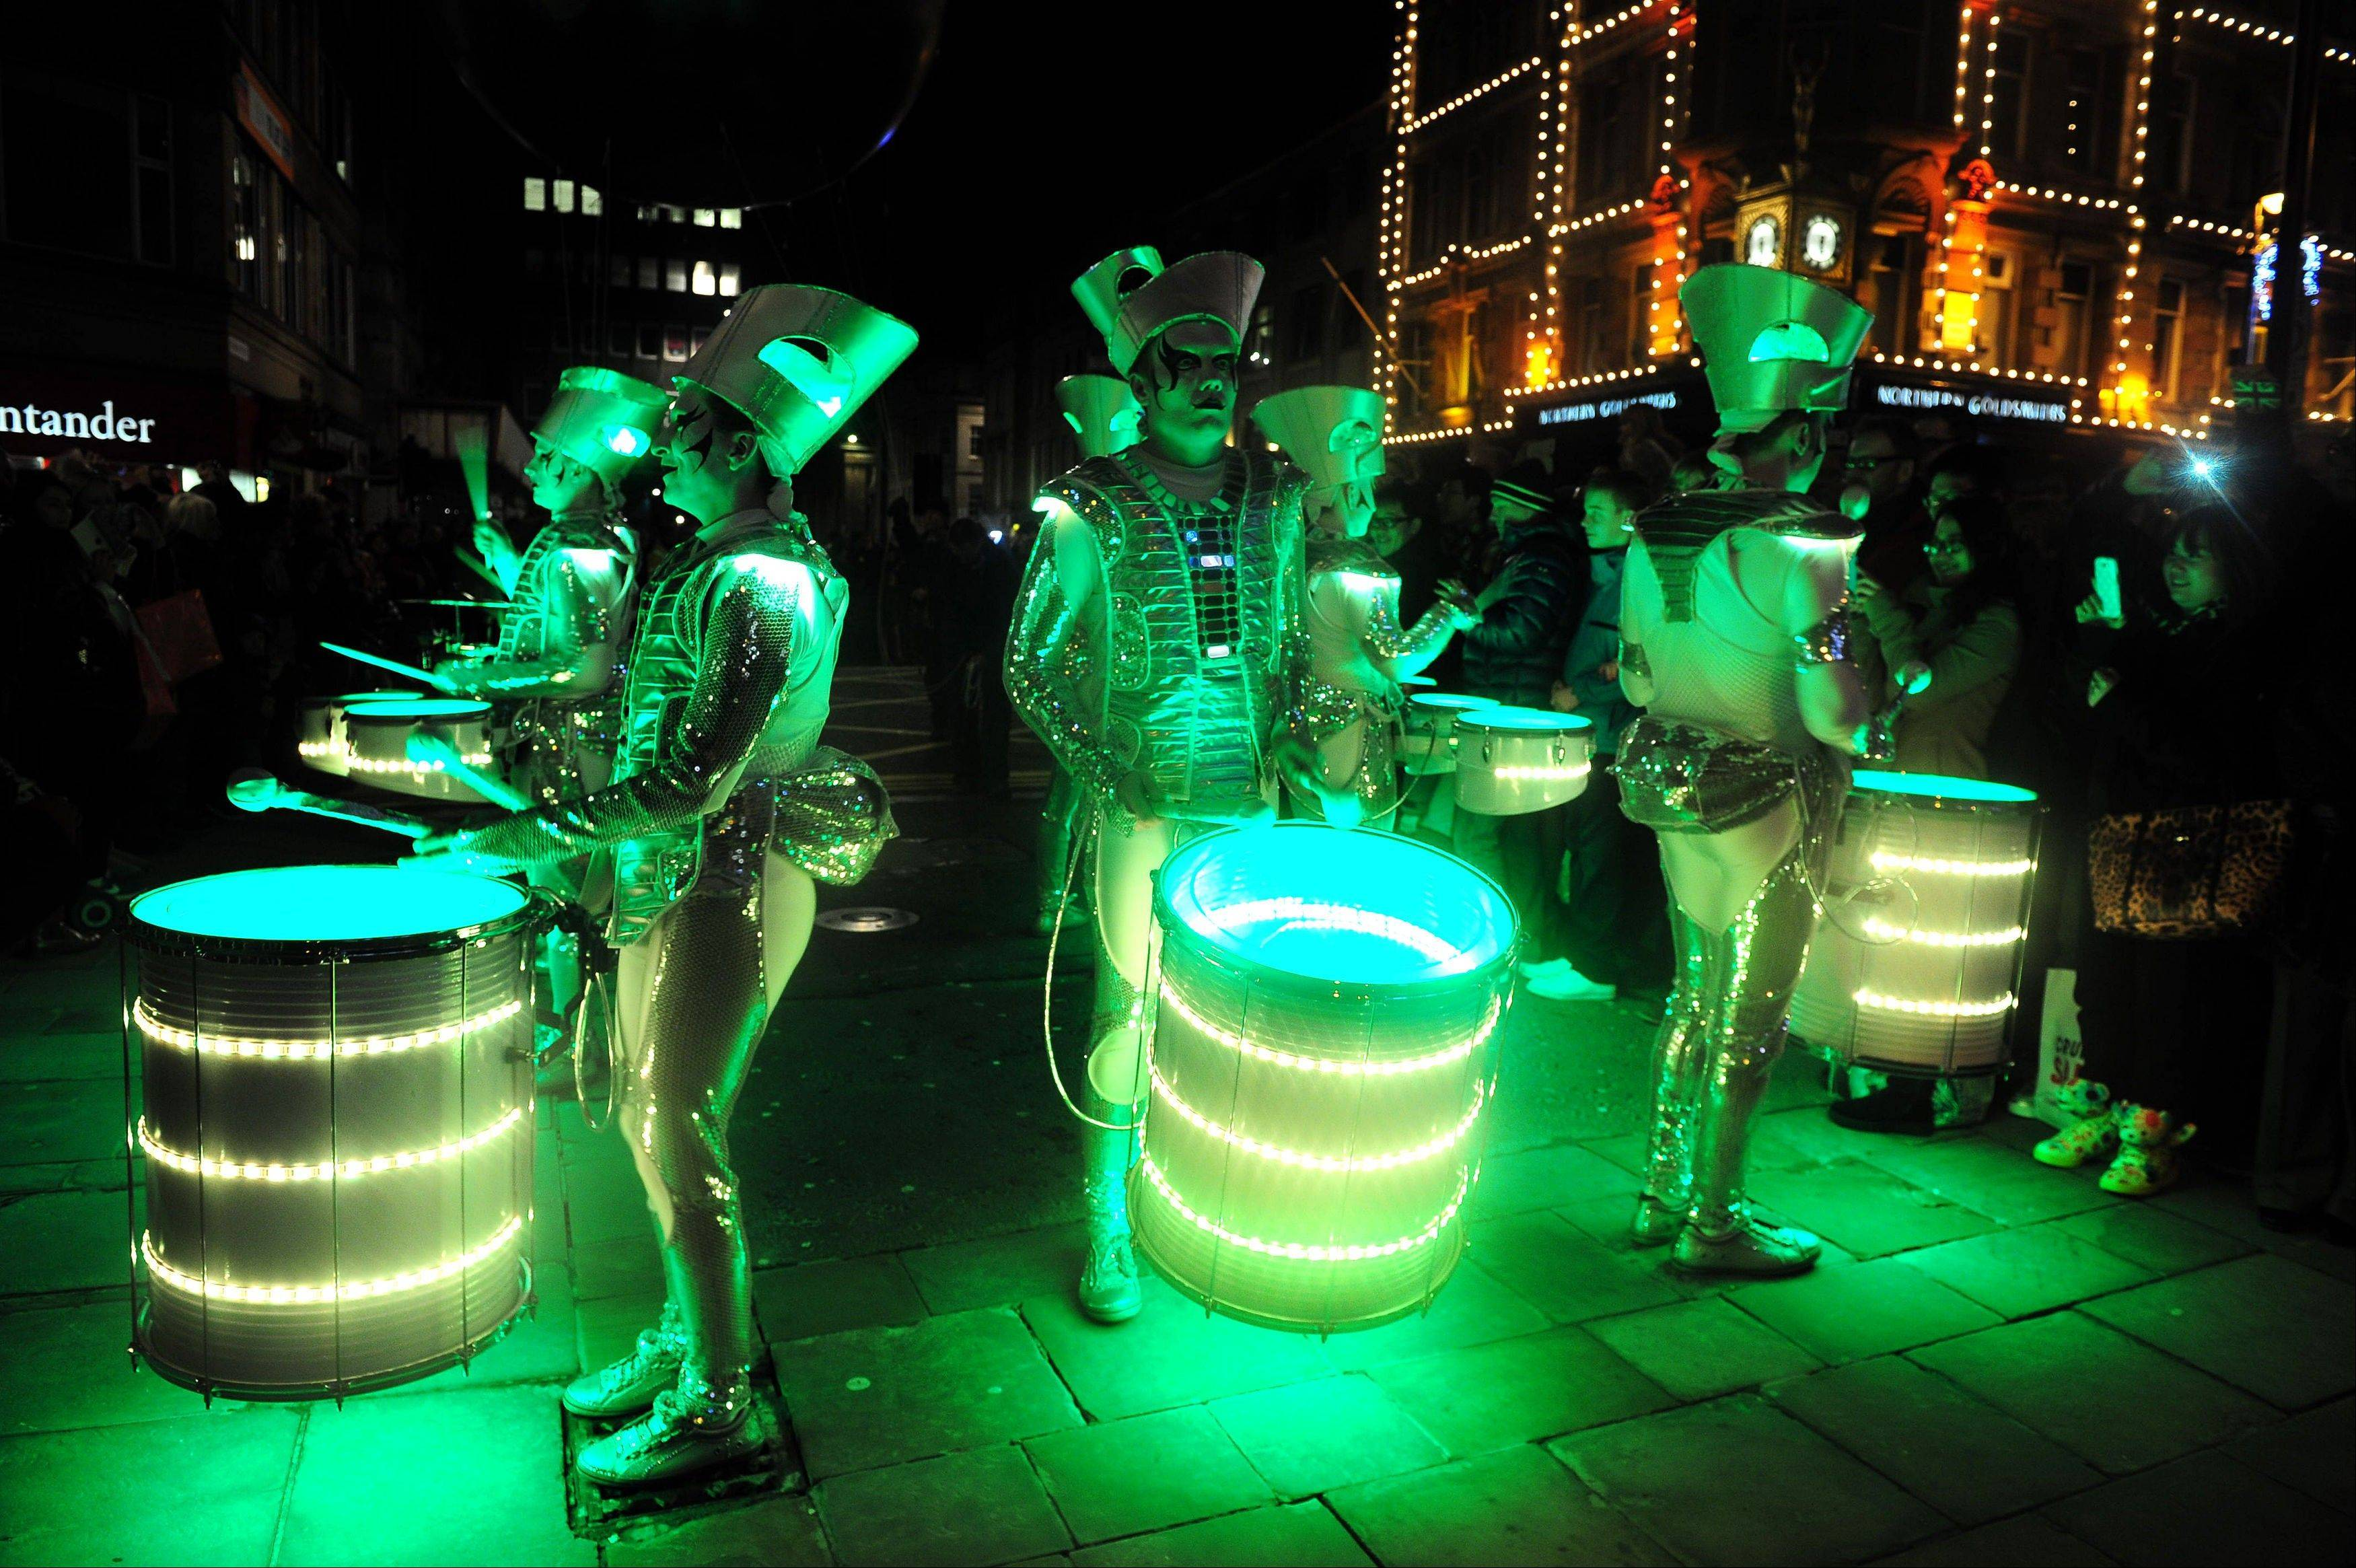 Celebrations get under way as the Spark drumming band pass through Newcastle city centre, England, Monday December 31, 2012.